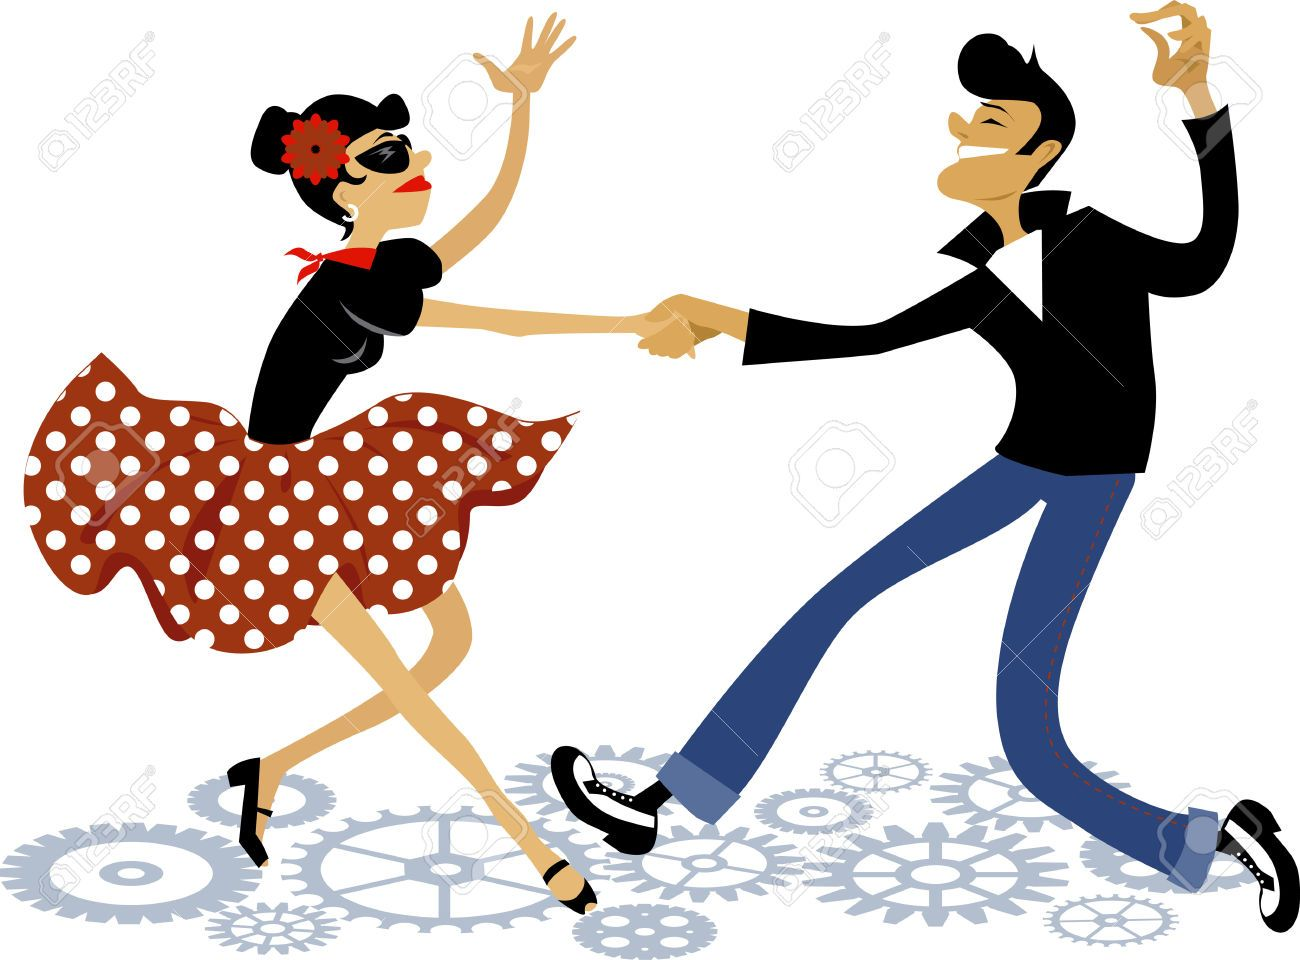 Bailes De Salon Rock And Roll Swing Baile Dibujo Buscar Con Google Coleccion